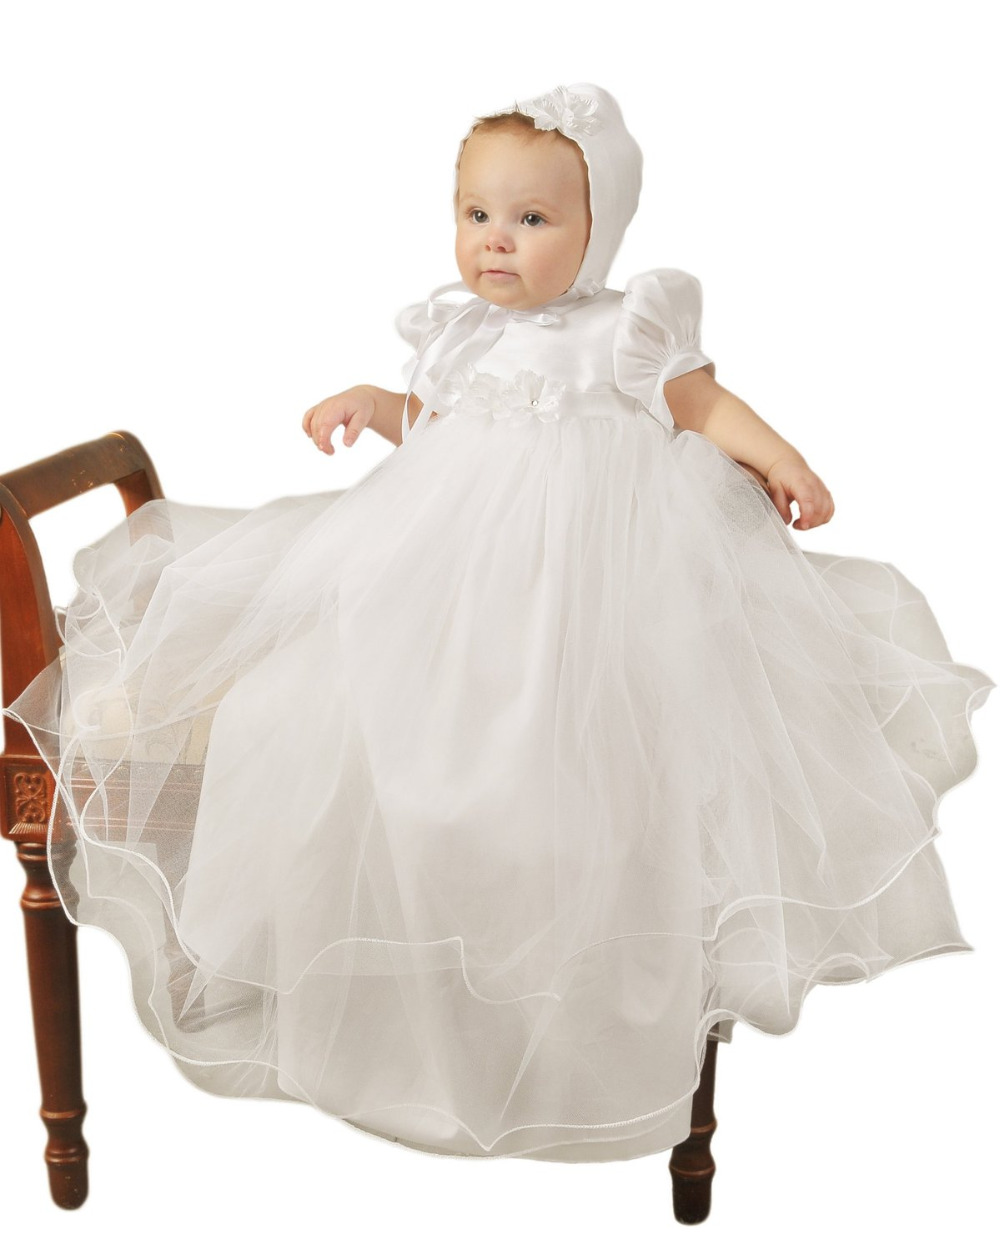 Hot Baby Girl Dresses Solid Short Sleeves Formal Puff Sleeves Flowers A-Line Back Button With Hat Christening Gowns Vestidos vintage baby girl christening dresses a line beading short sleeves solid white and ivory vestido infantil menina baptism gowns